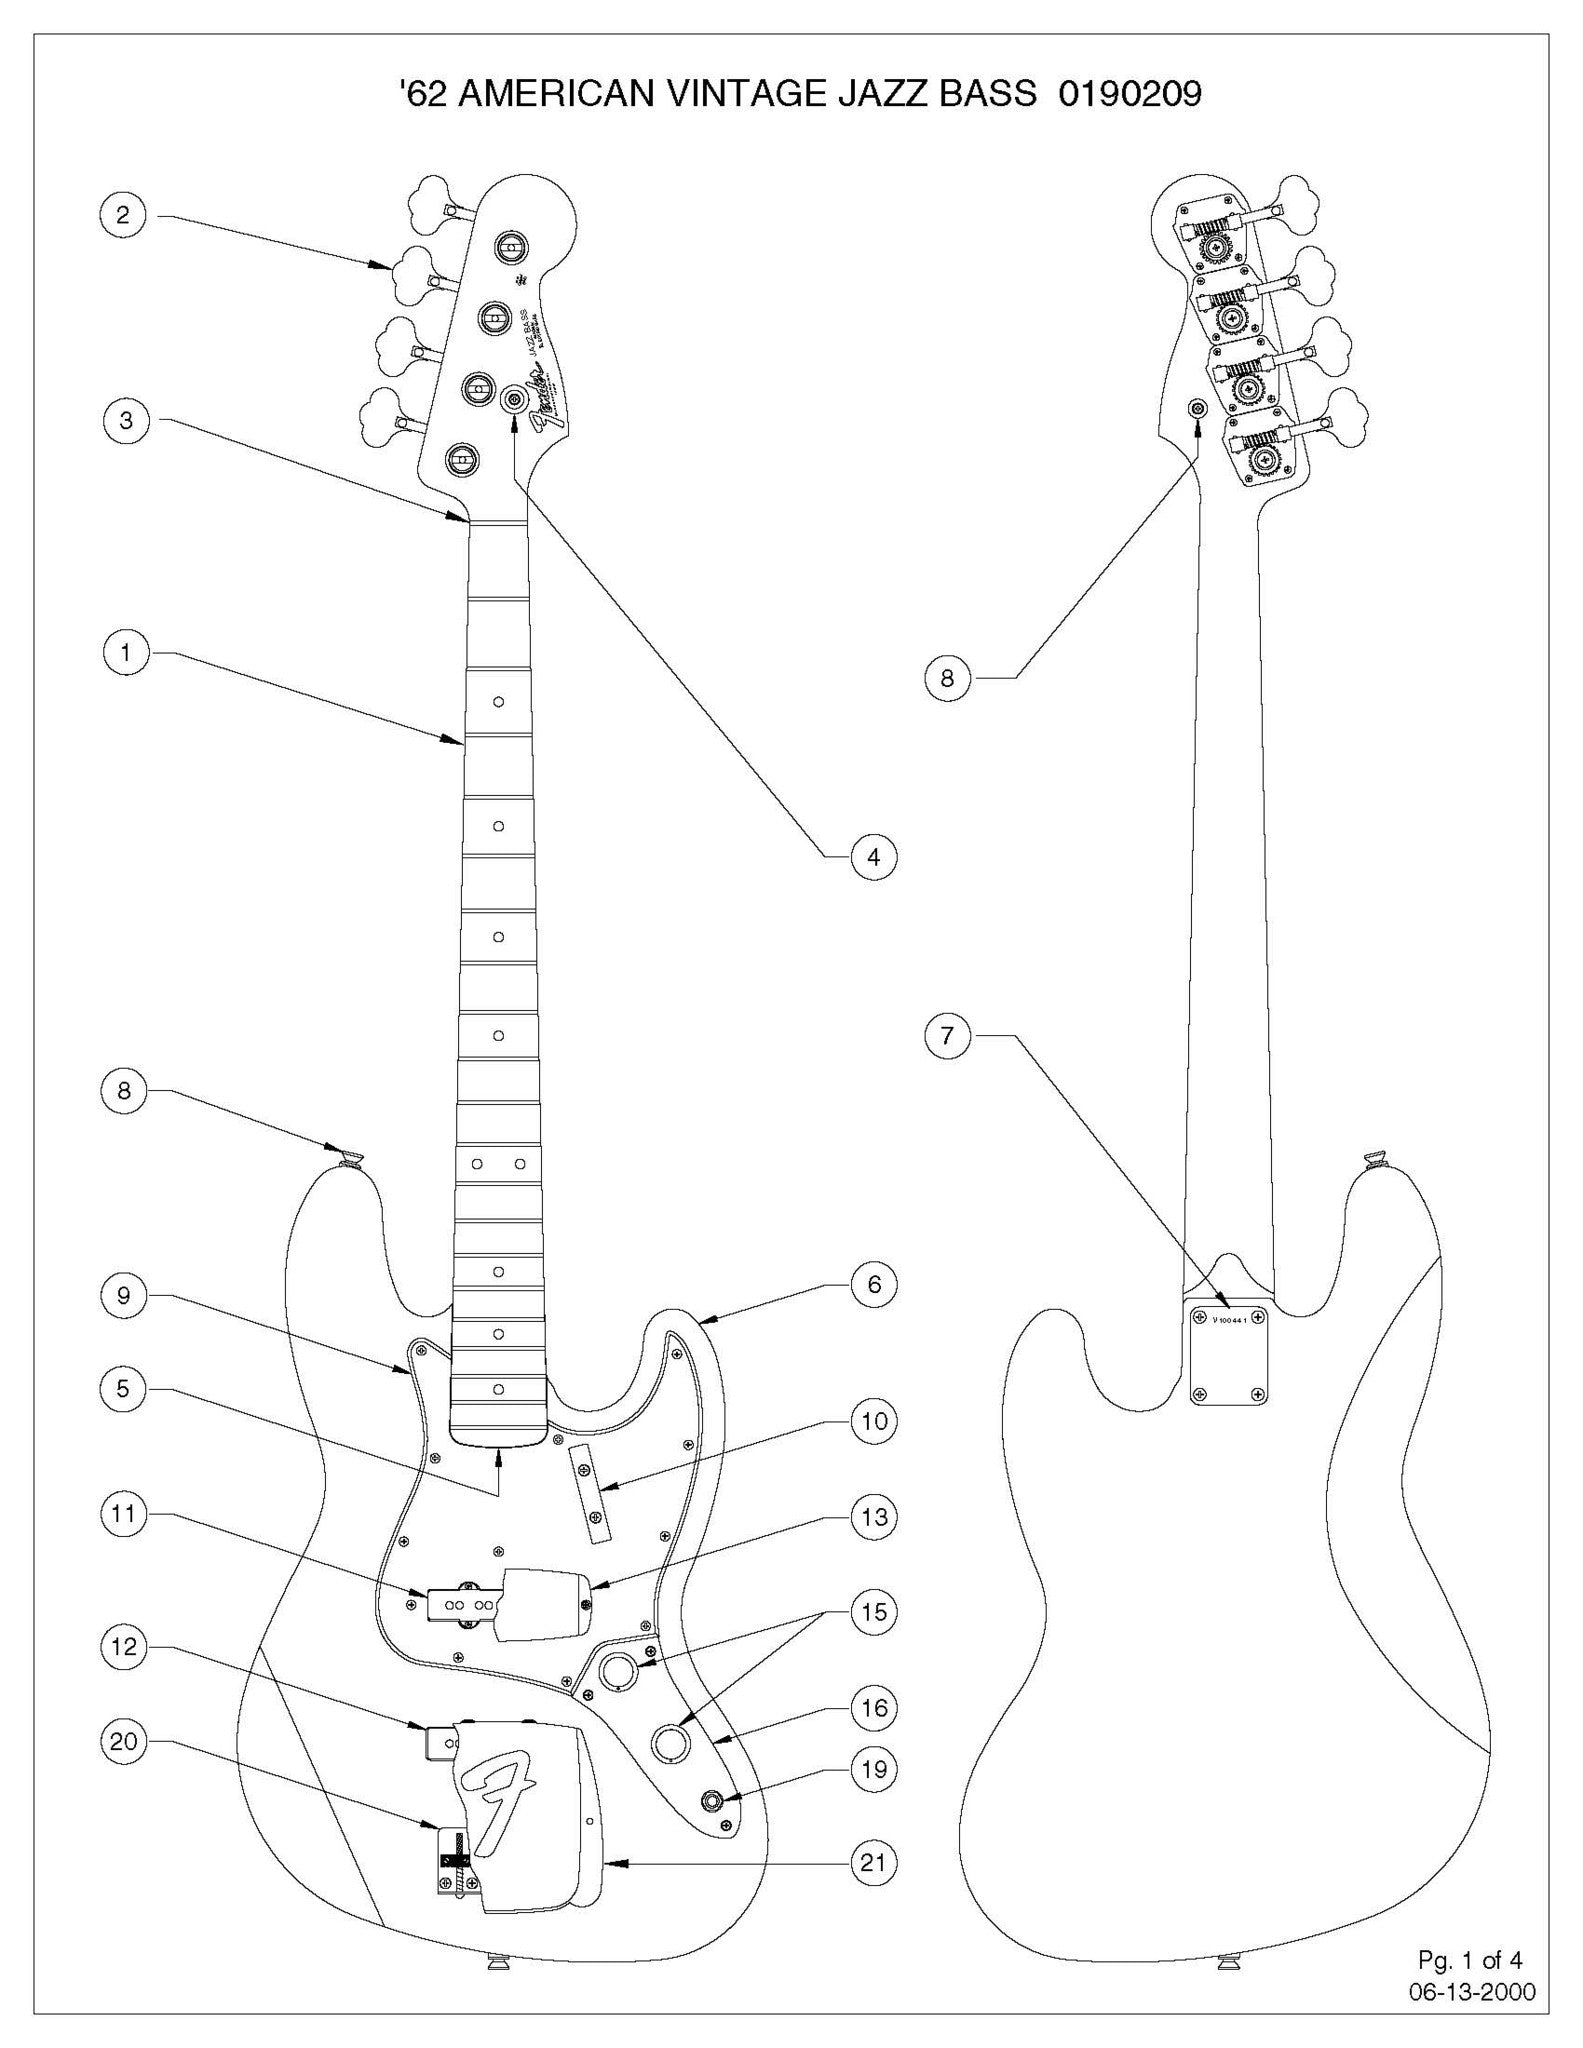 Jazz Bass Concentric Wiring Diagram House Symbols 74 Fender B Diagrams Sigler Music Rh Siglermusiconline Com P For 500k